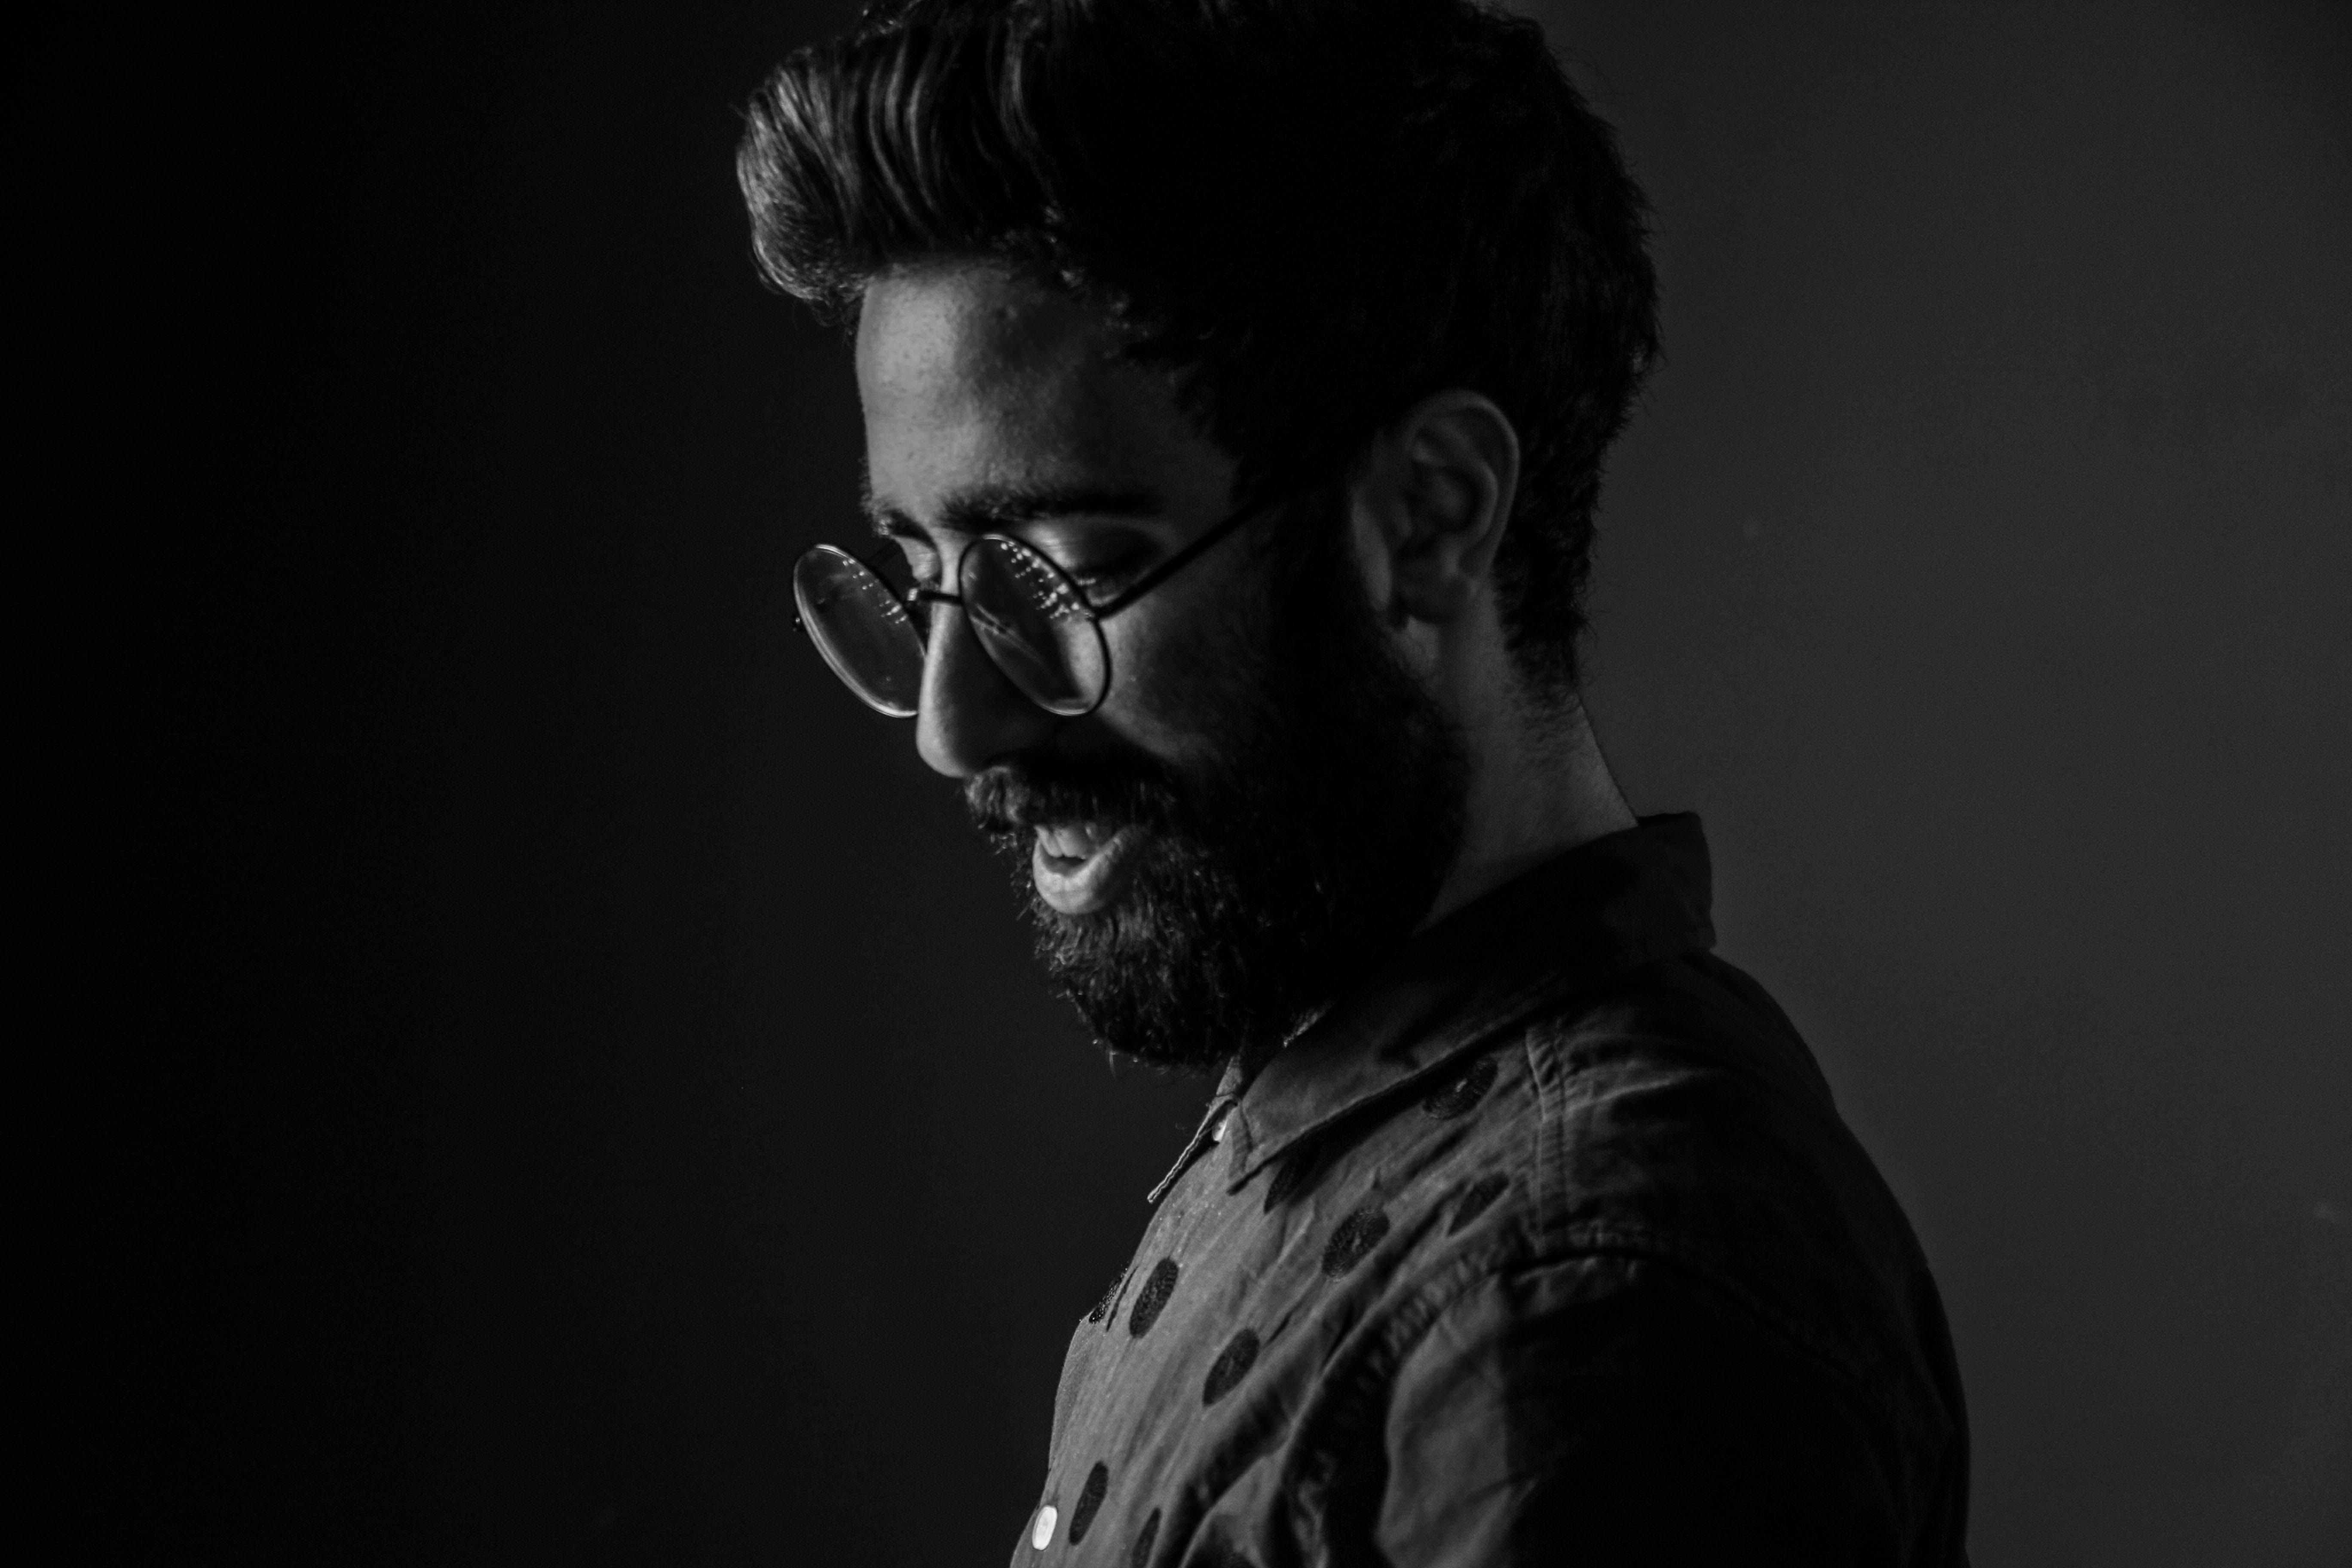 Grayscale Photography of Man Wearing Round Eyeglasses